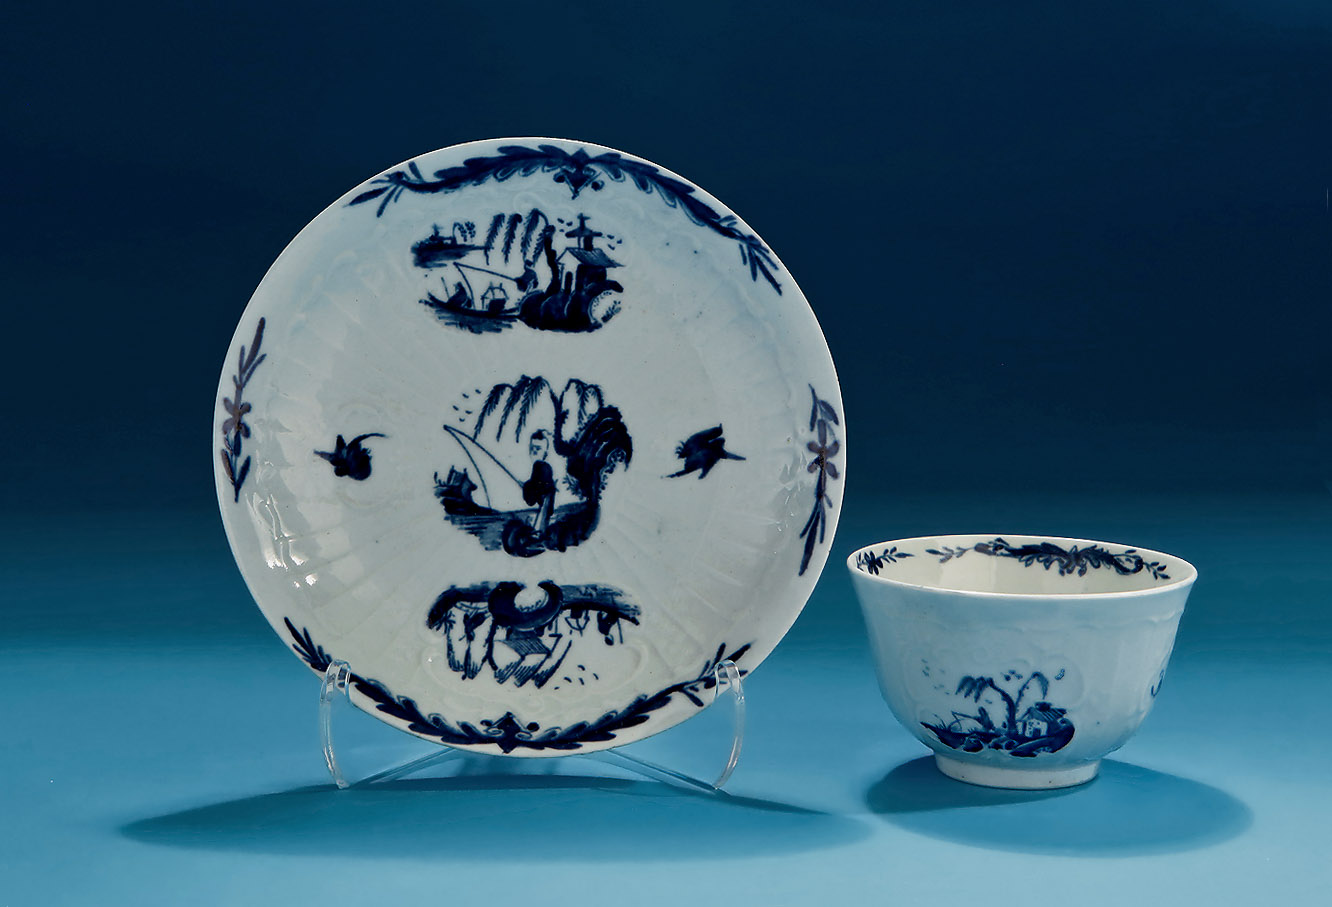 Good Early Worcester Moulded Teabowl & Saucer, Fisherman & Willow Pattern, Exhibition Paul Zeisler Collection of English Blue & White Porcelain, 1986